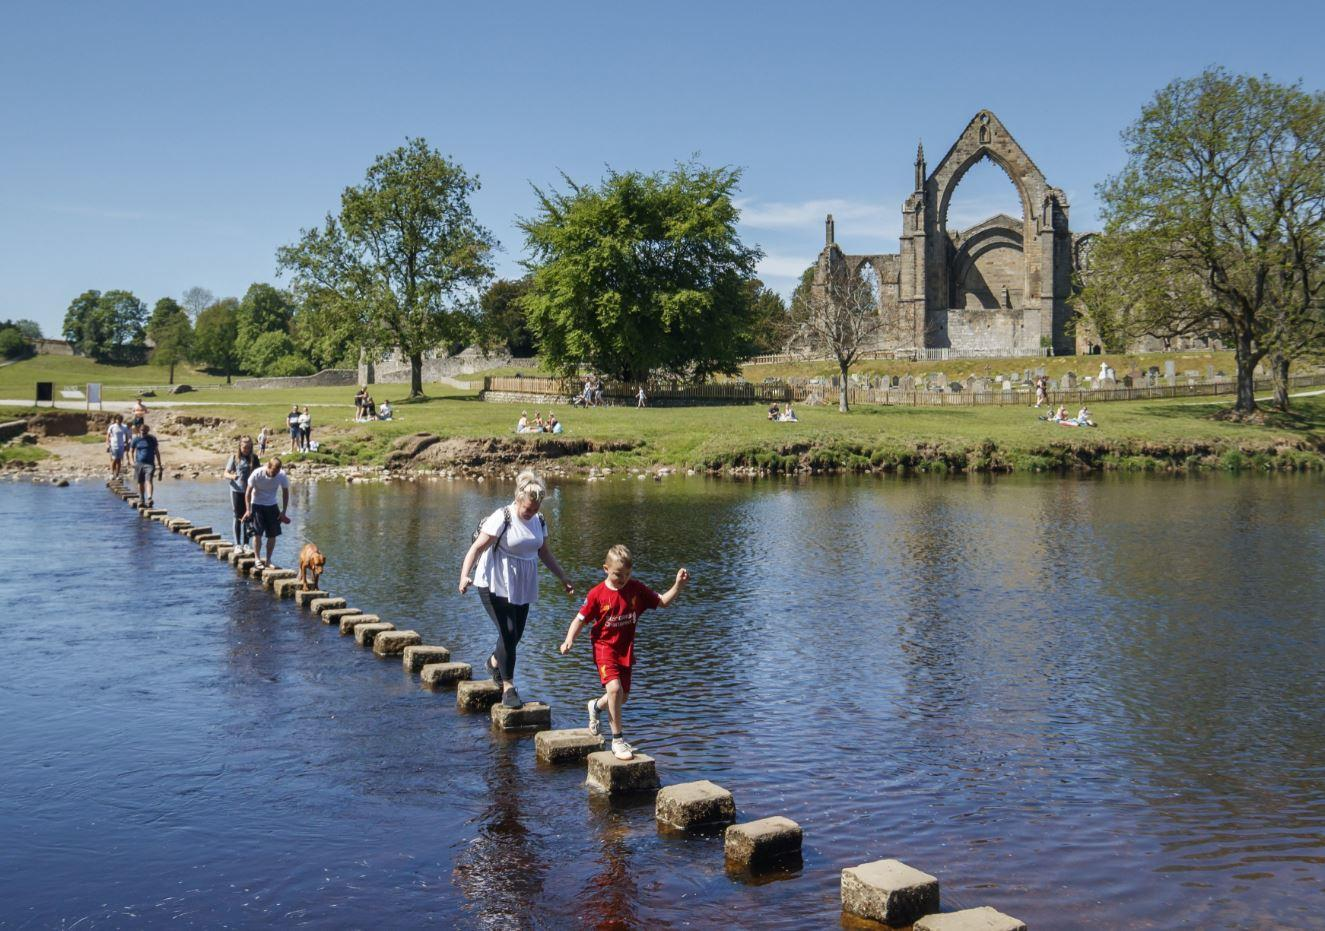 FAMILY LIFE: Enjoy great days out safely once restrictions begin to lift.